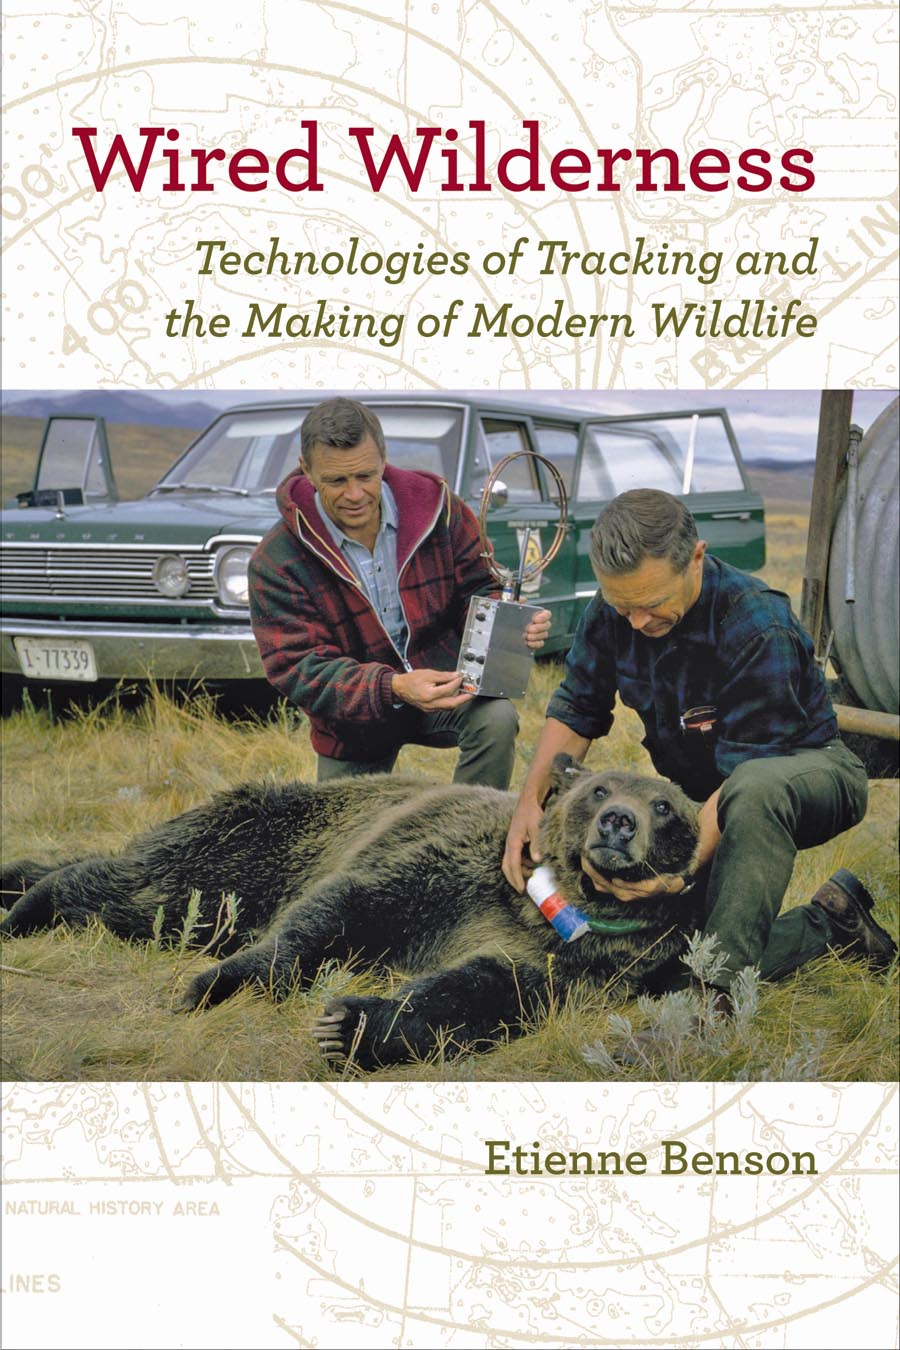 Wired Wilderness – Technologies of Tracking and the Making of Modern Wildlife heroin organized crime and the making of modern turkey